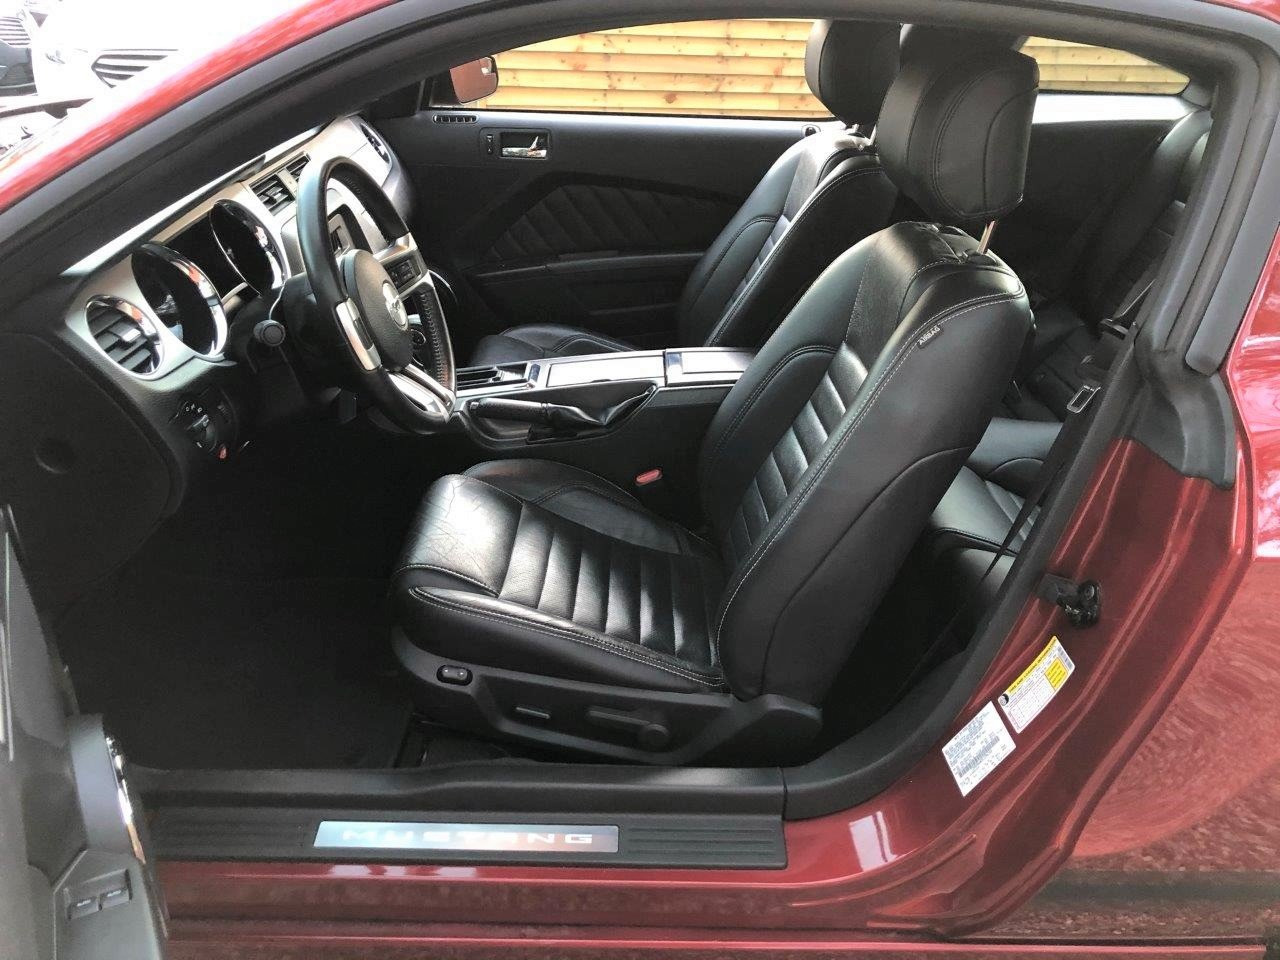 2014 15-Plate UK Registered Mustang Premium Fastback LHD Auto For Sale (picture 6 of 6)